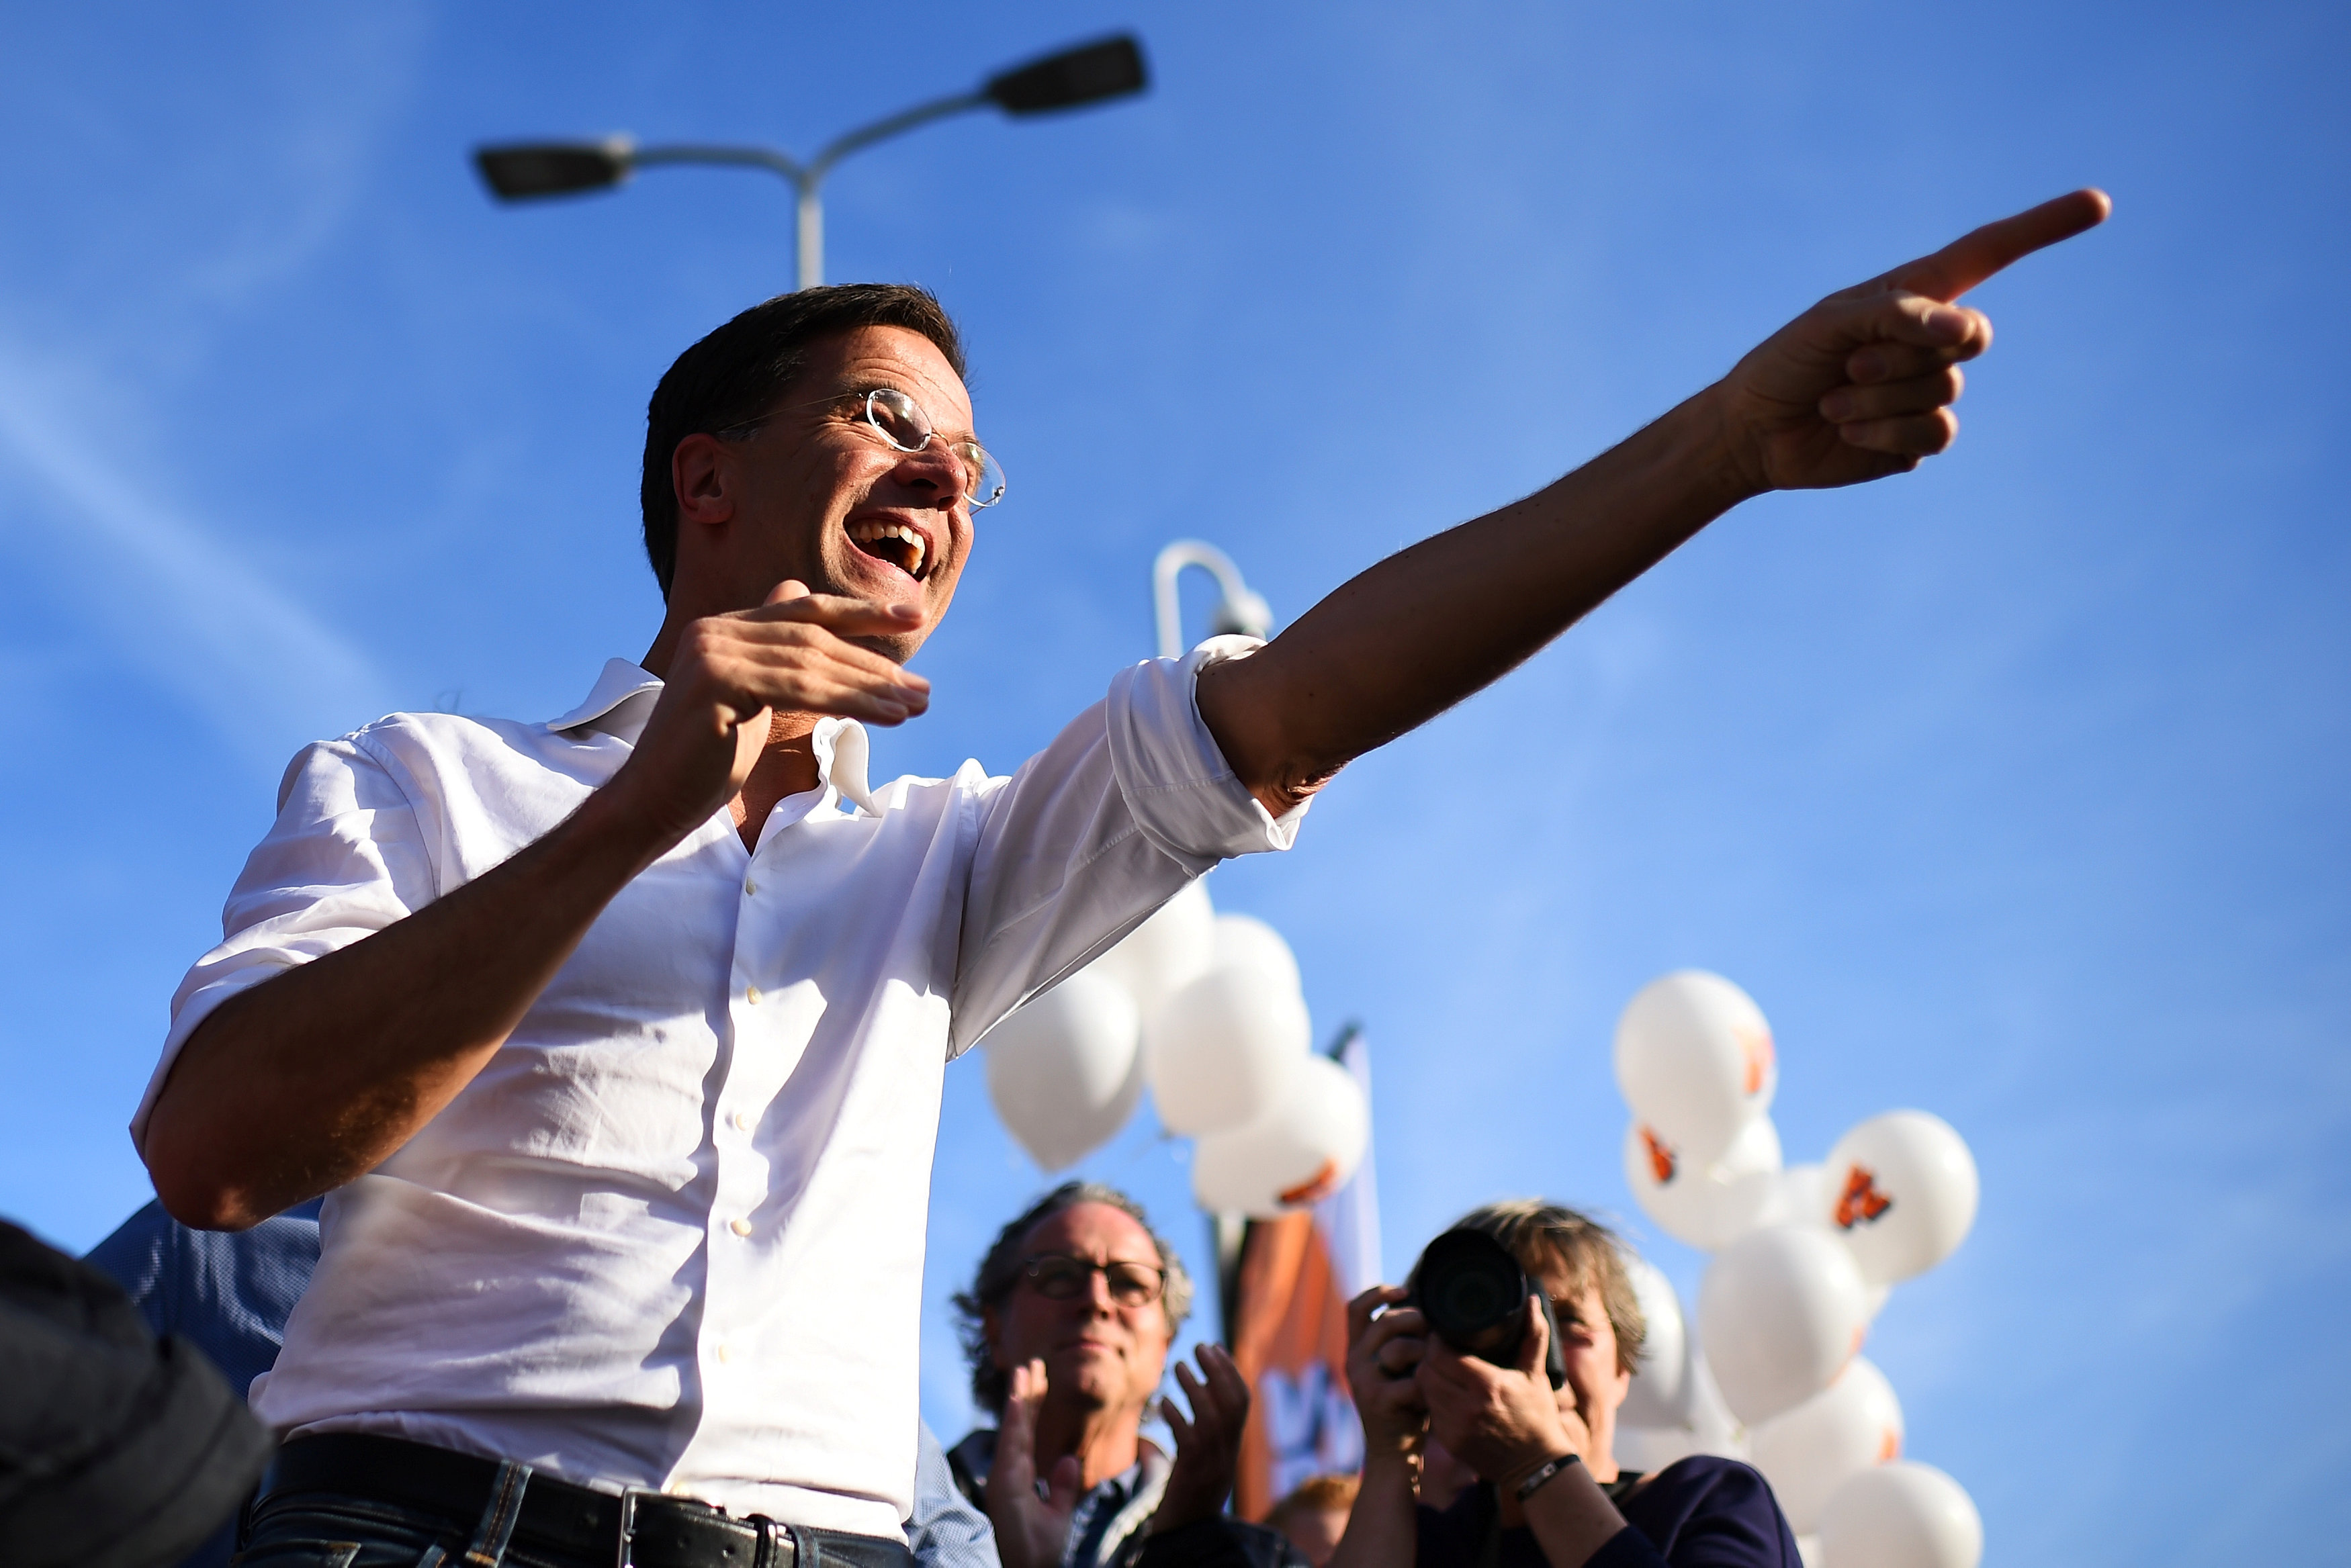 Dutch Prime Minister Mark Rutte of the VVD Liberal party reacts during campaigning in The Hague, Netherlands on March 12, 2017. (REUTERS/Dylan Martinez)